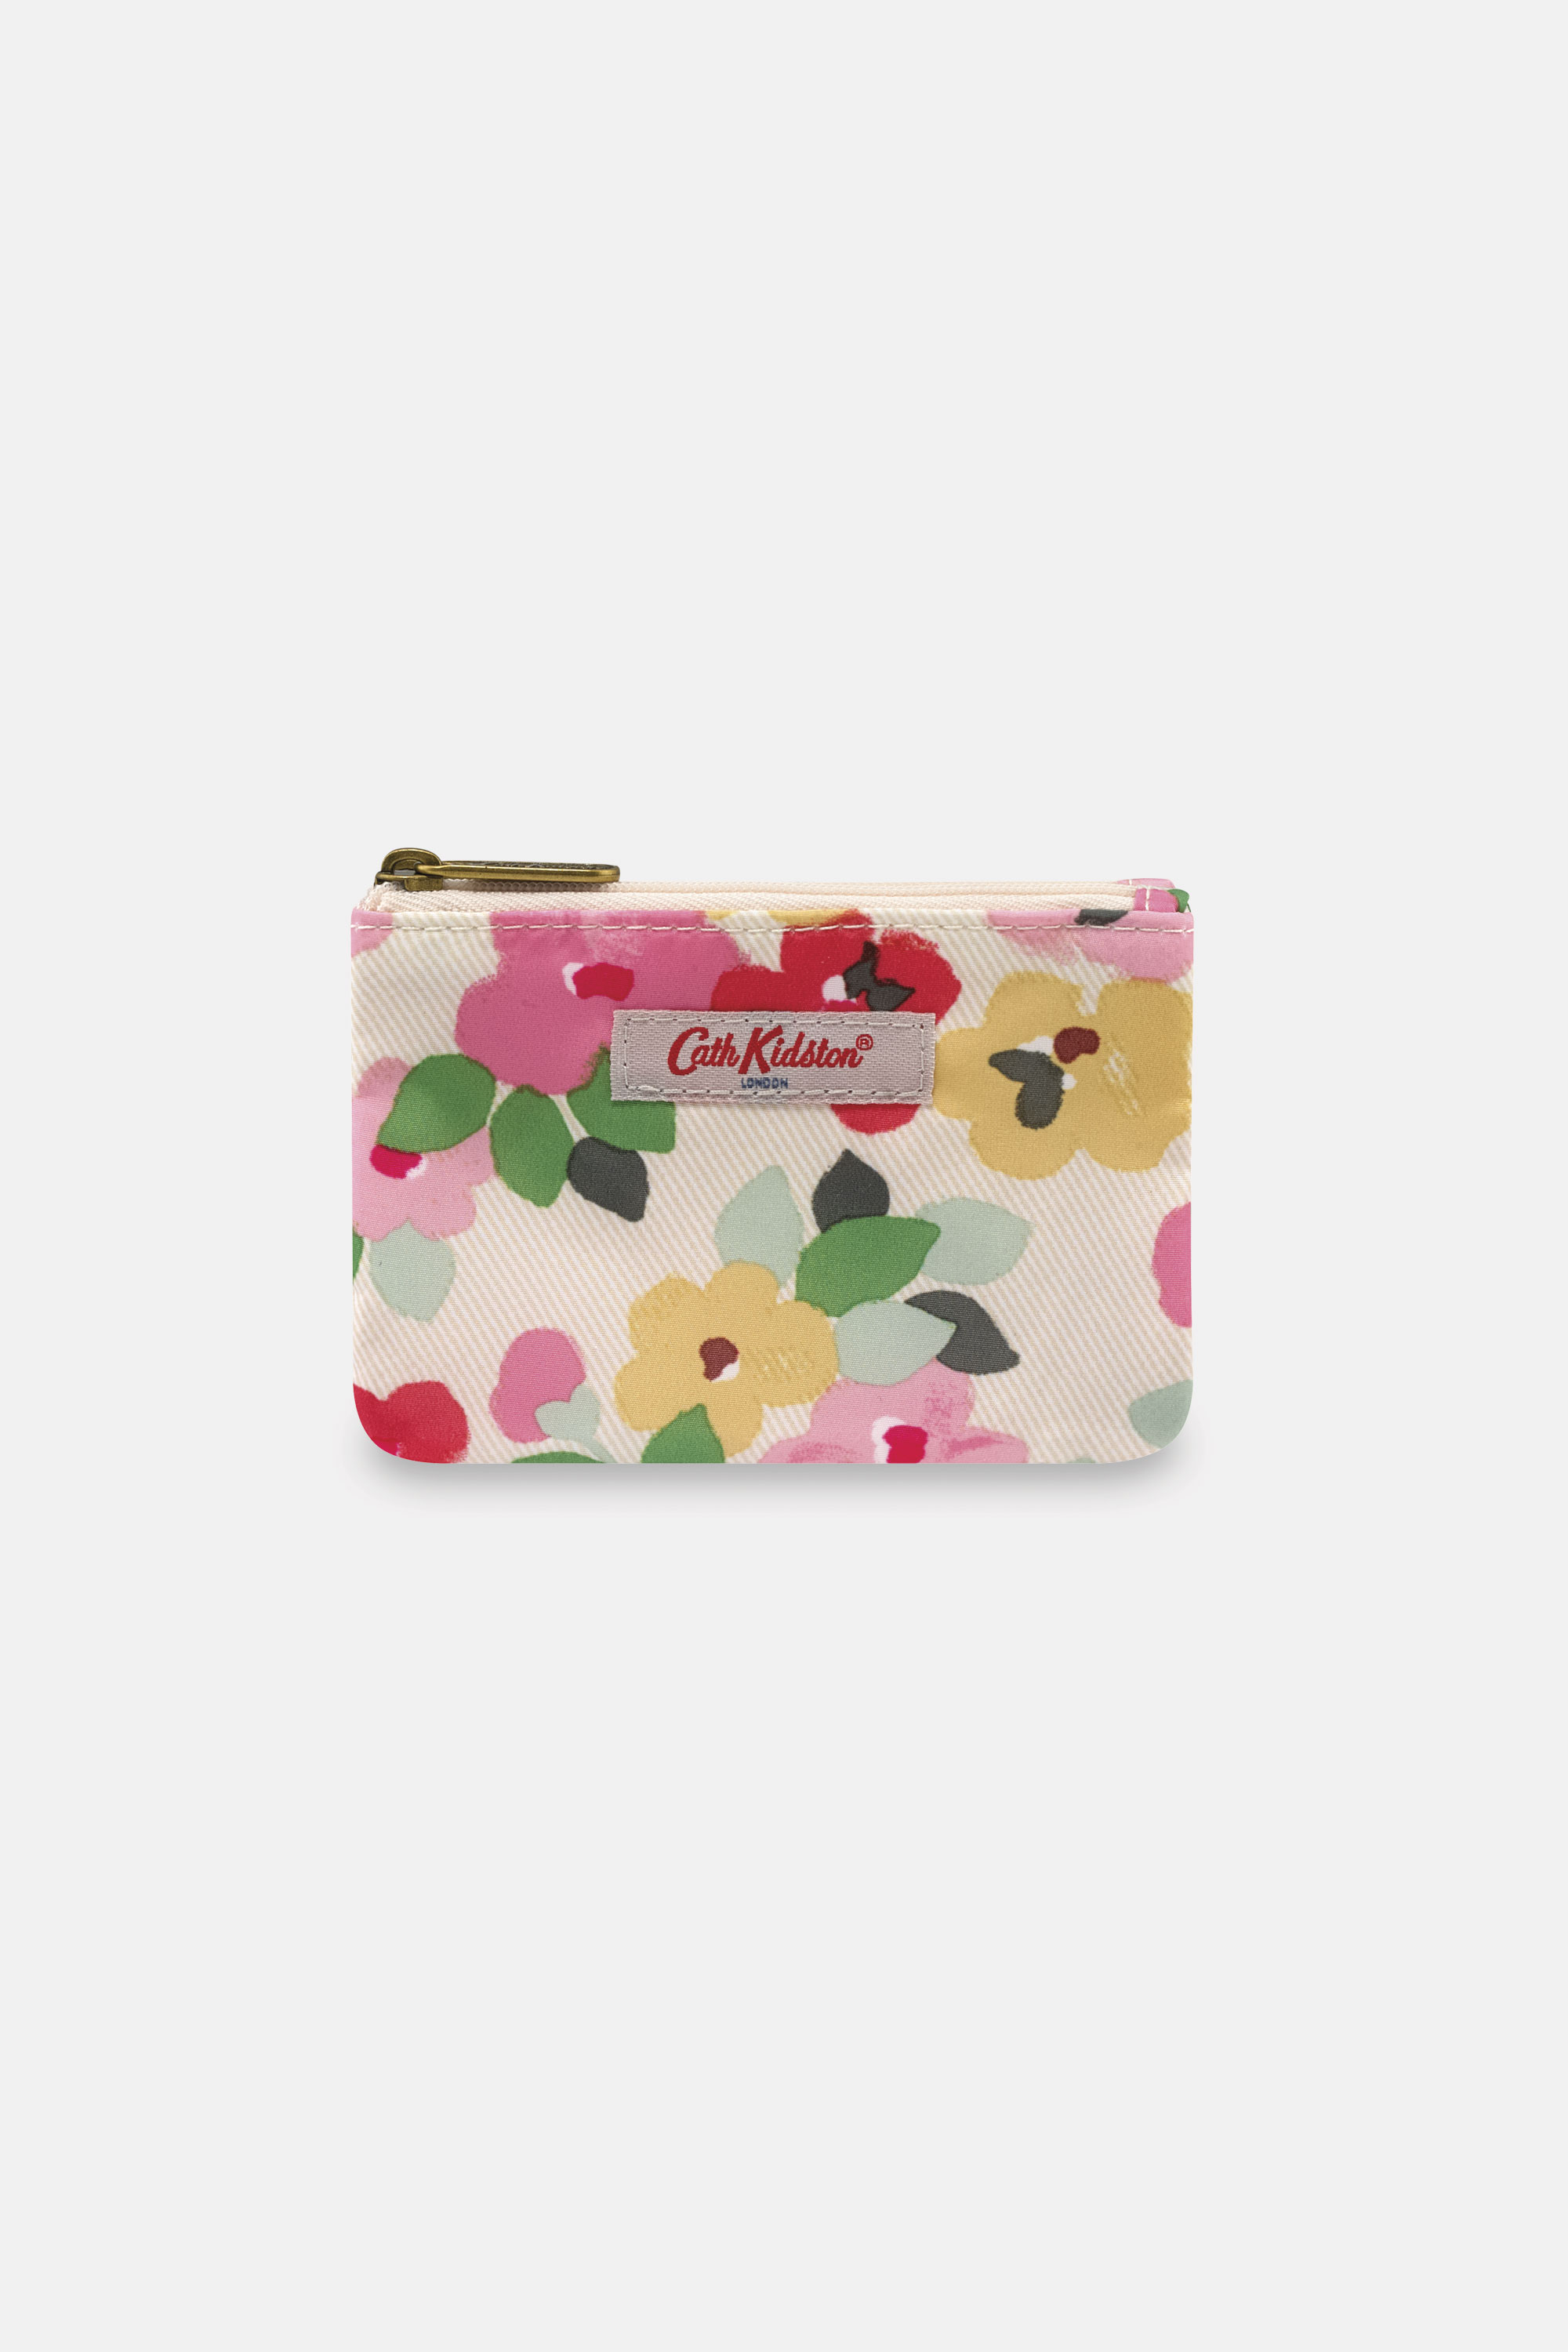 Cath Kidston Double Pocket Purse in Cream, Large Painted Pansies, 100% Polyester